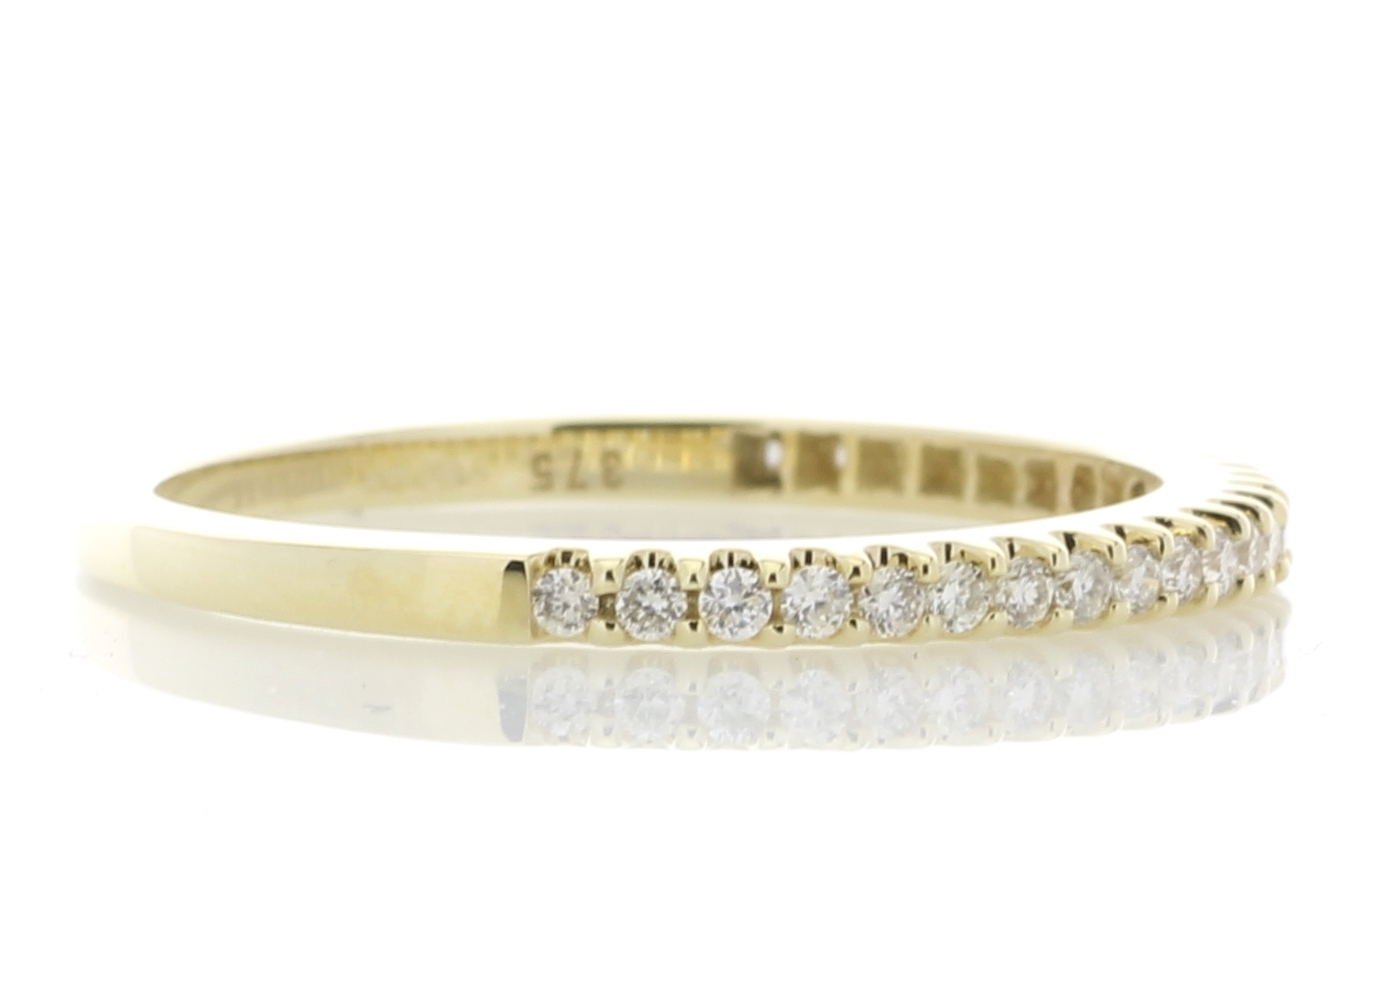 9ct Yellow Gold Diamond Half Eternity Ring 0.25 Carats - Image 4 of 4